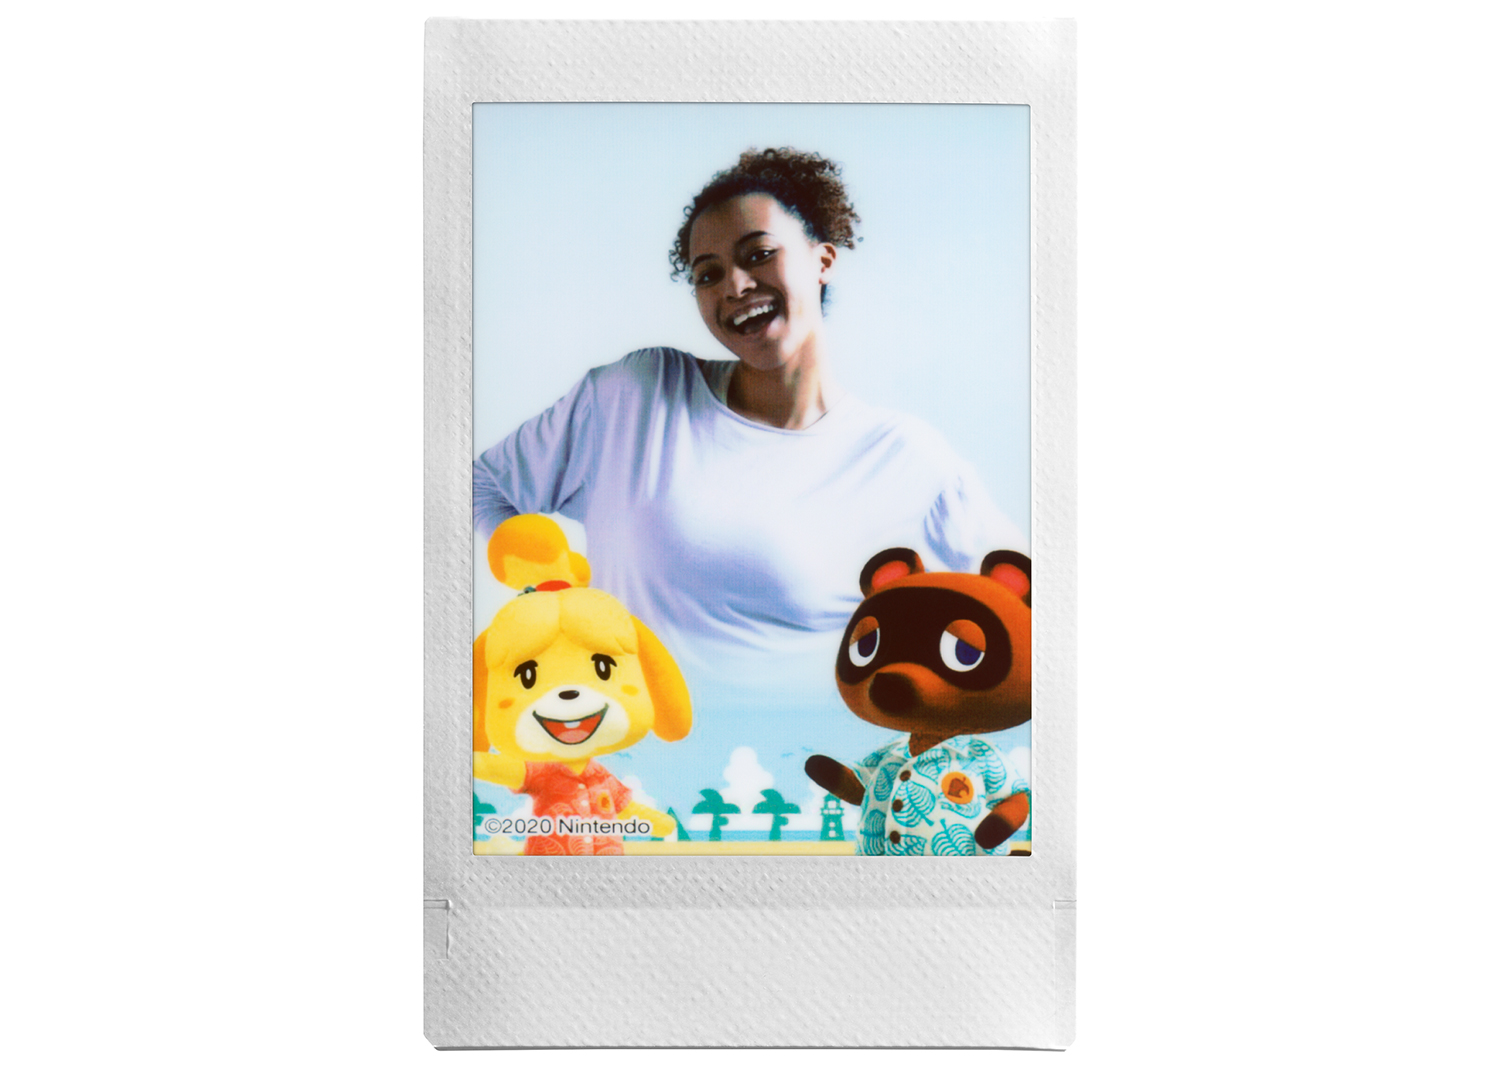 [Product Images]Frame Print Animal Crossing: New Horizons